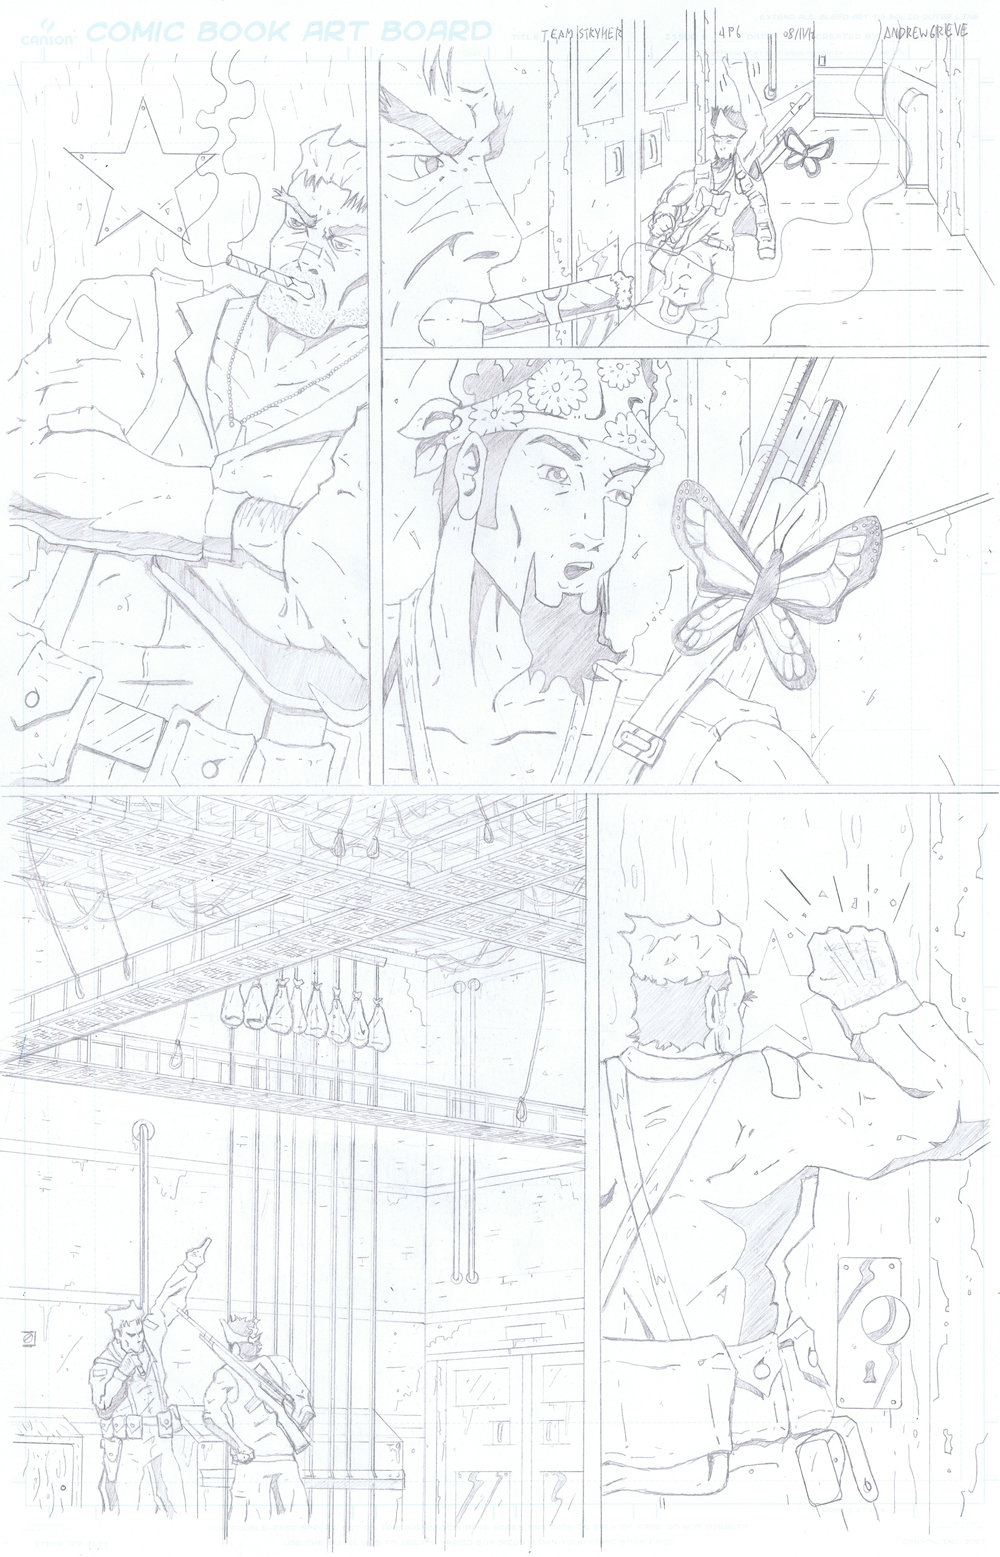 MISSION 004: PAGE 06 PENCIL